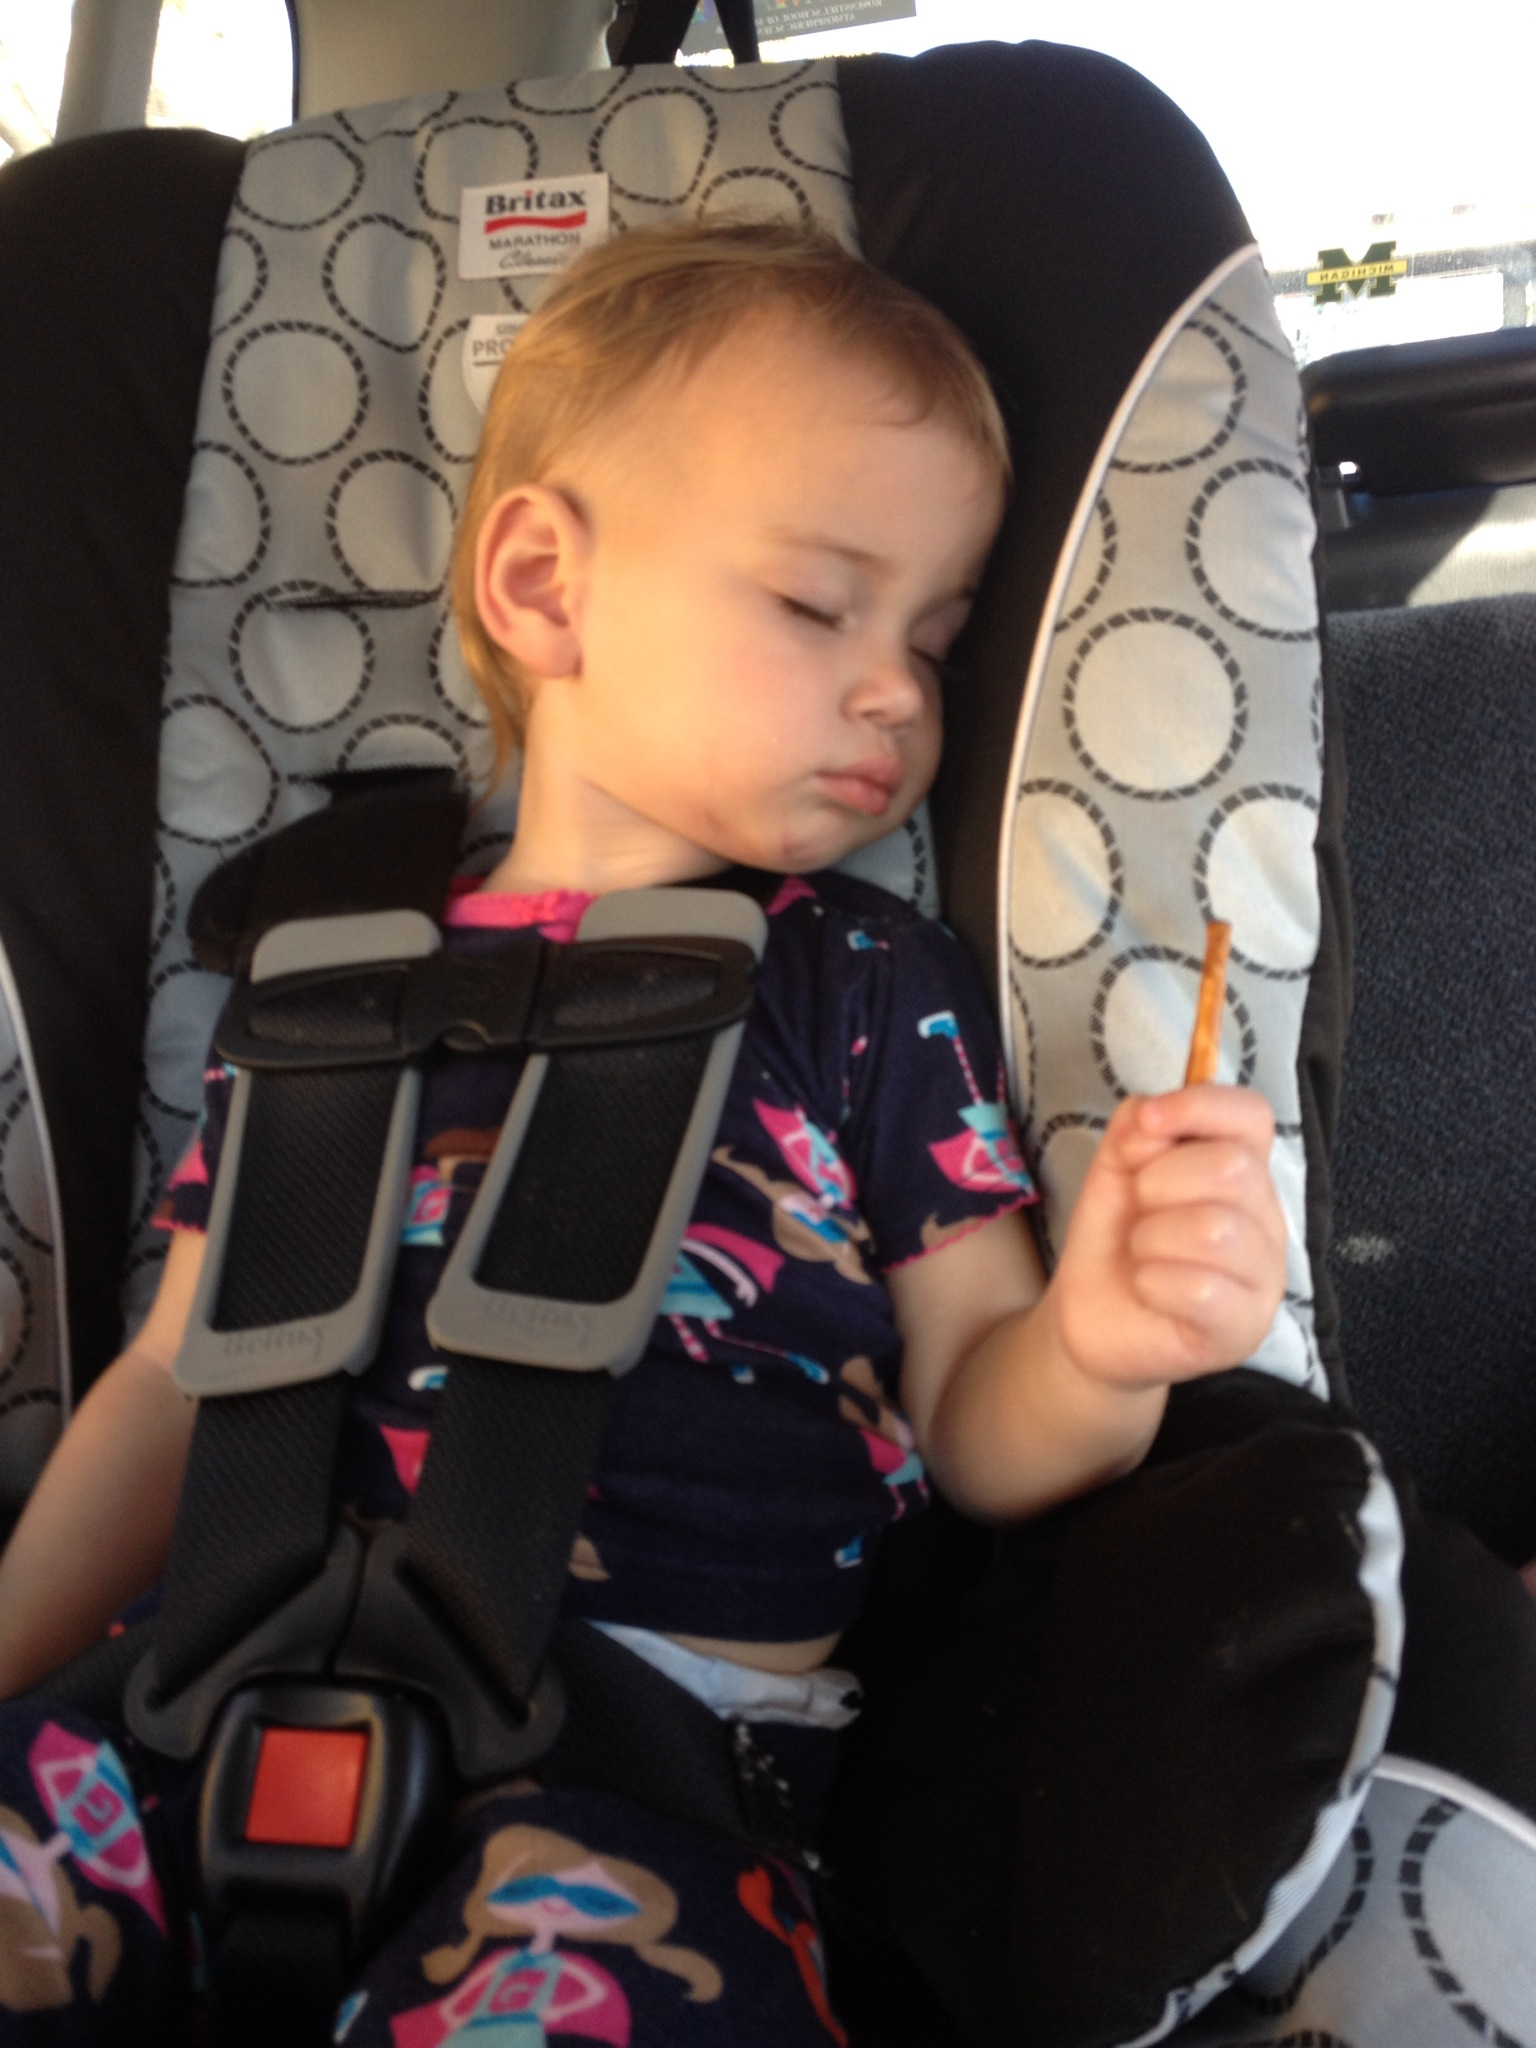 After her bout with food poisoning -- a drive in the car to help induce napping.  She would NOT let go of those pretzels.